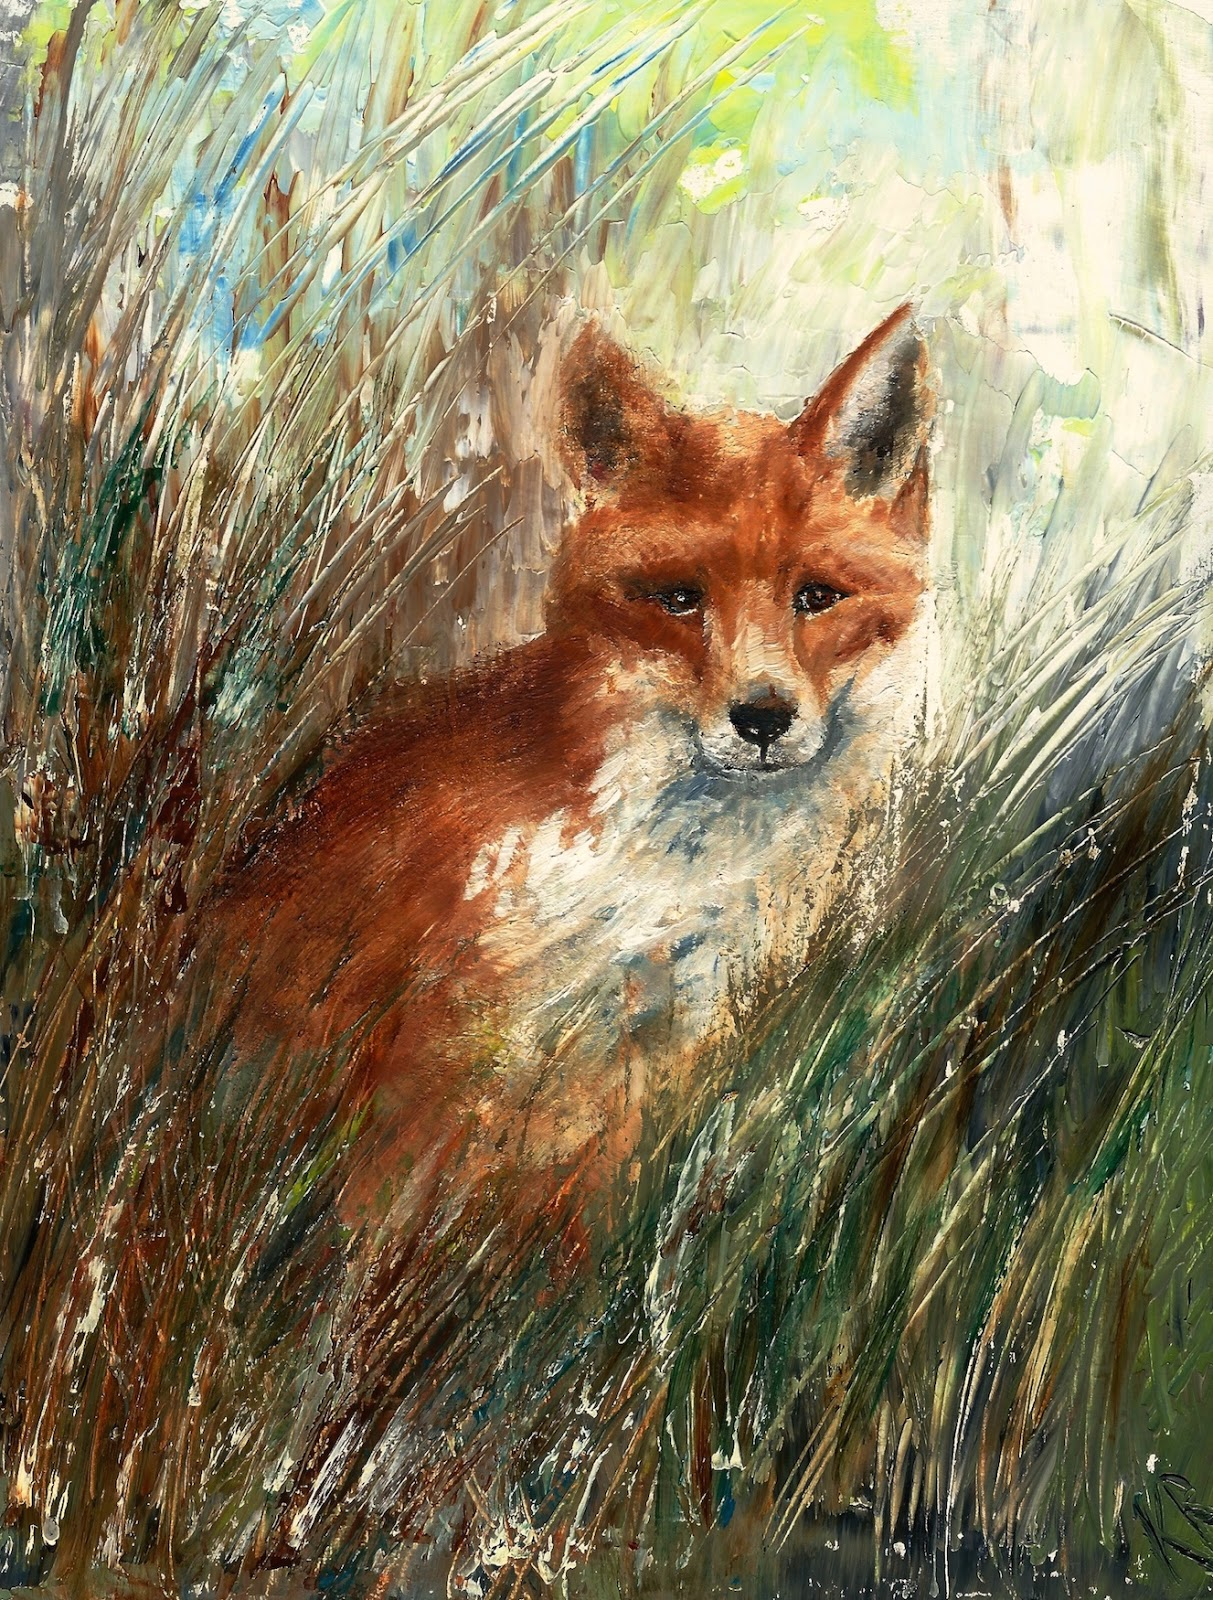 Fox hiding in grass, an oil painting, palette knife painting, a pet portrait by Karen